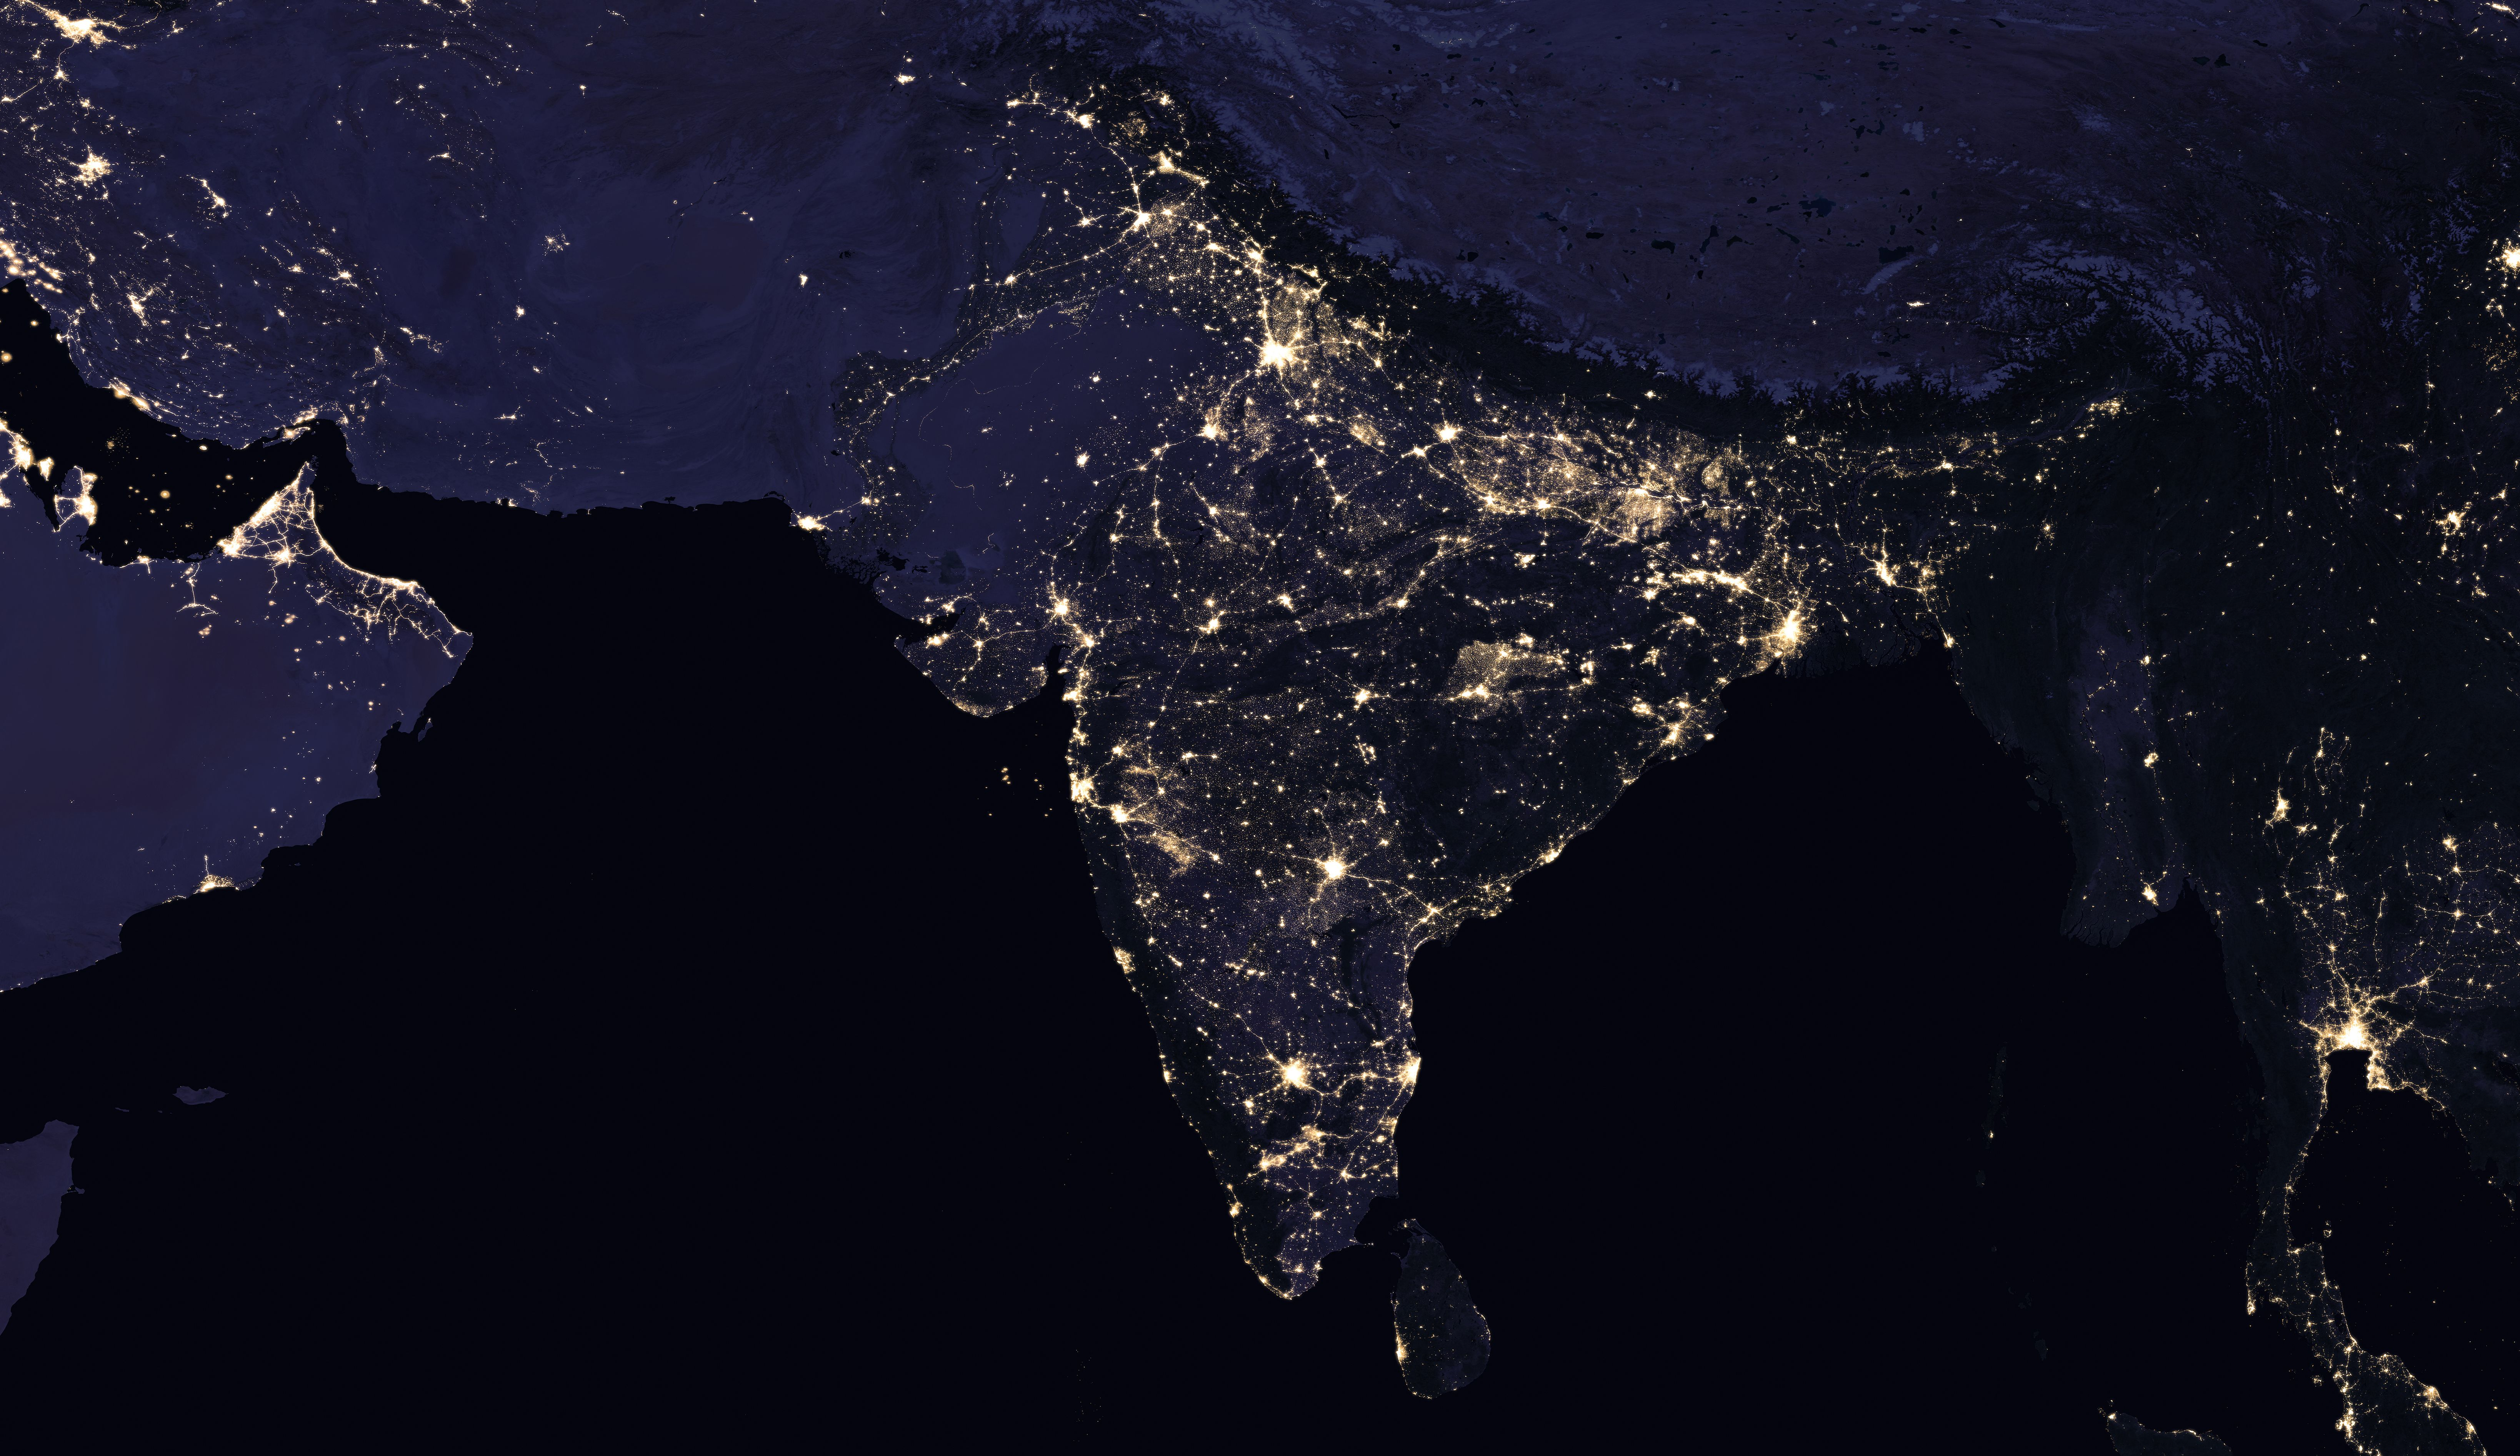 New night lights maps open up possible real time applications earth at night gumiabroncs Choice Image